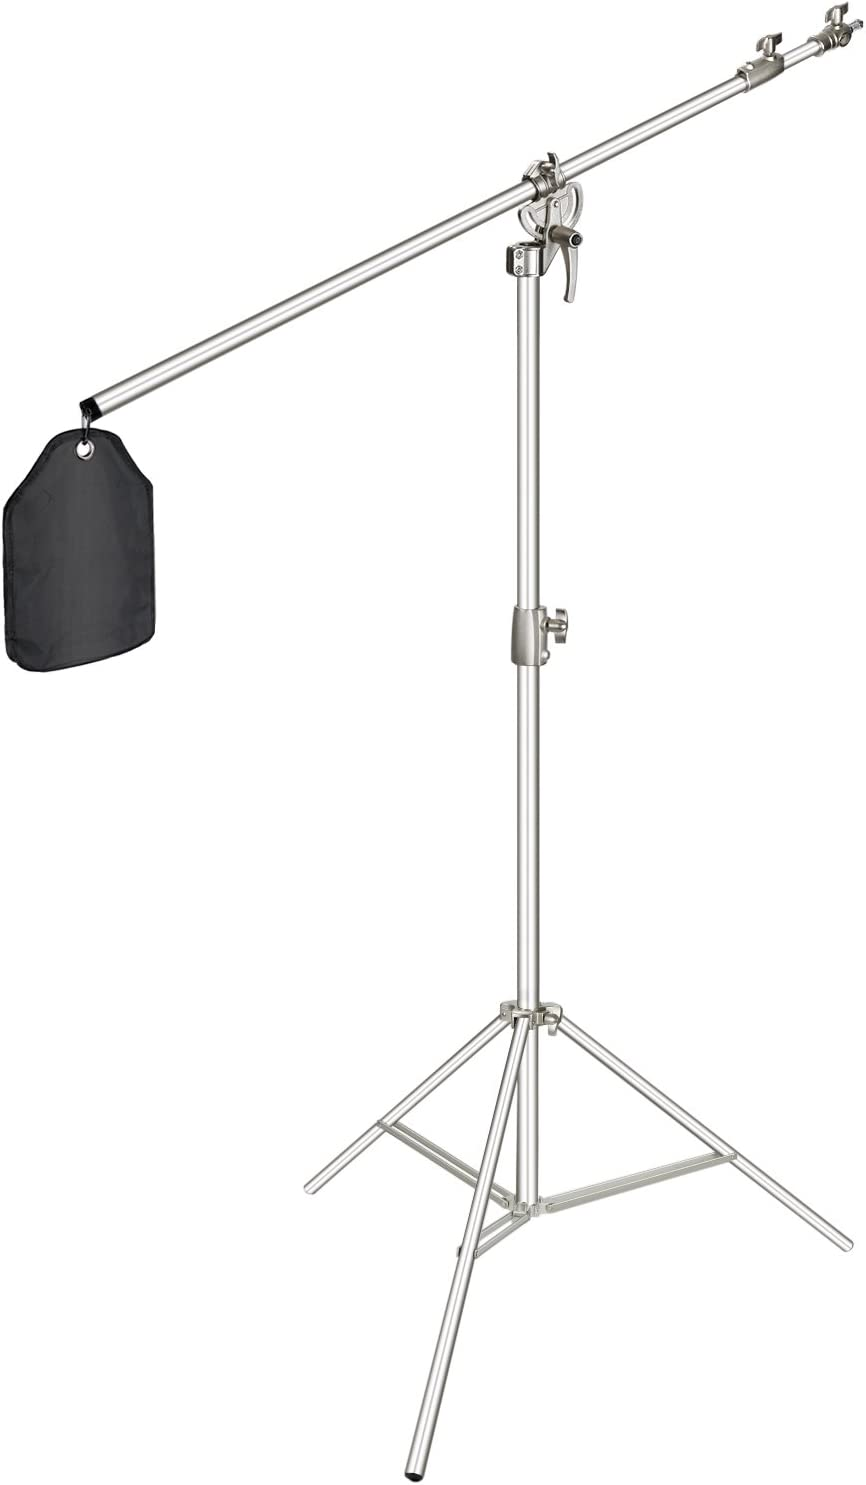 Amazon Com Neewer Photo Studio 2 In 1 Light Stand 48 4 151 5 Inches Adjustable Height With 85 Inch Boom Arm And Sandbag Aluminum Alloy For Supporting Umbrella Softbox Flash For Portrait Video Photography Silver Electronics